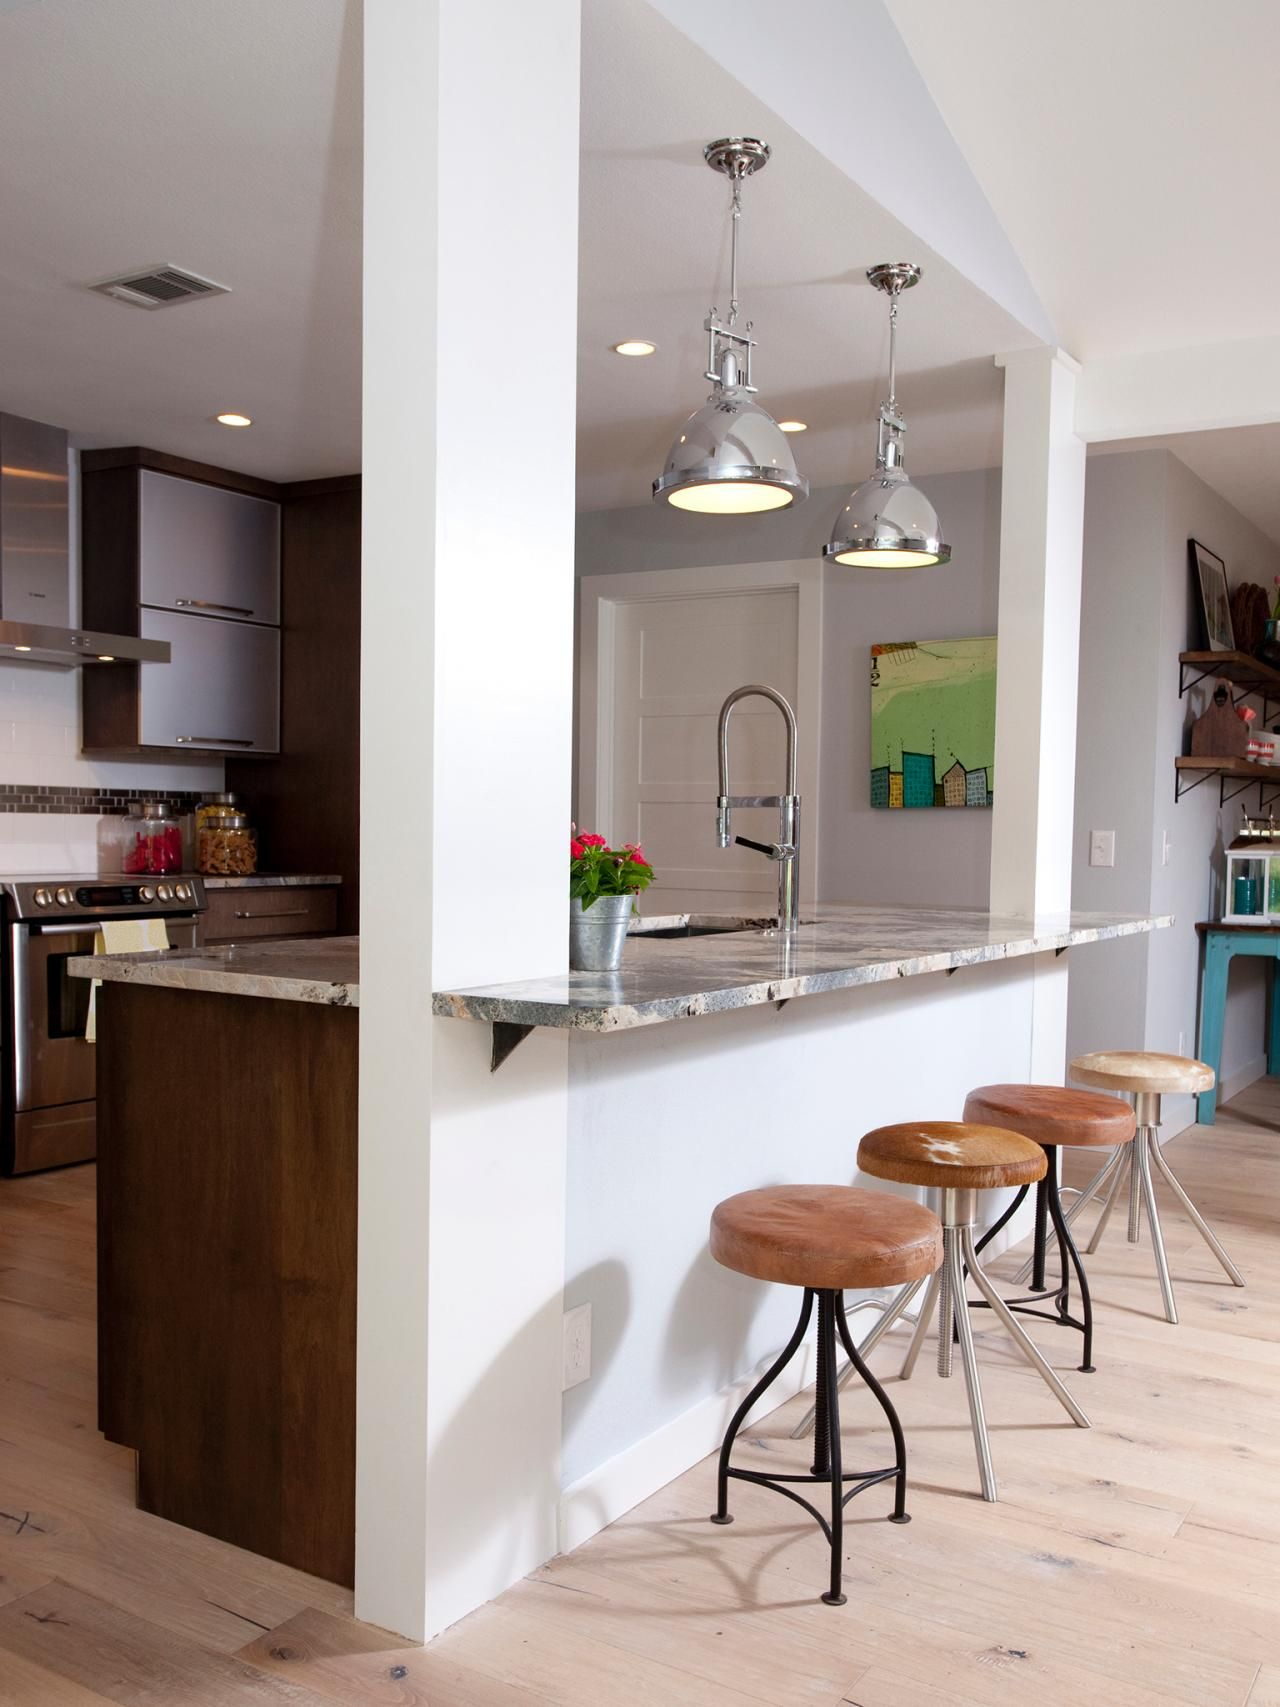 Pantries For Small Kitchens Pictures Ideas Tips From Kitchen